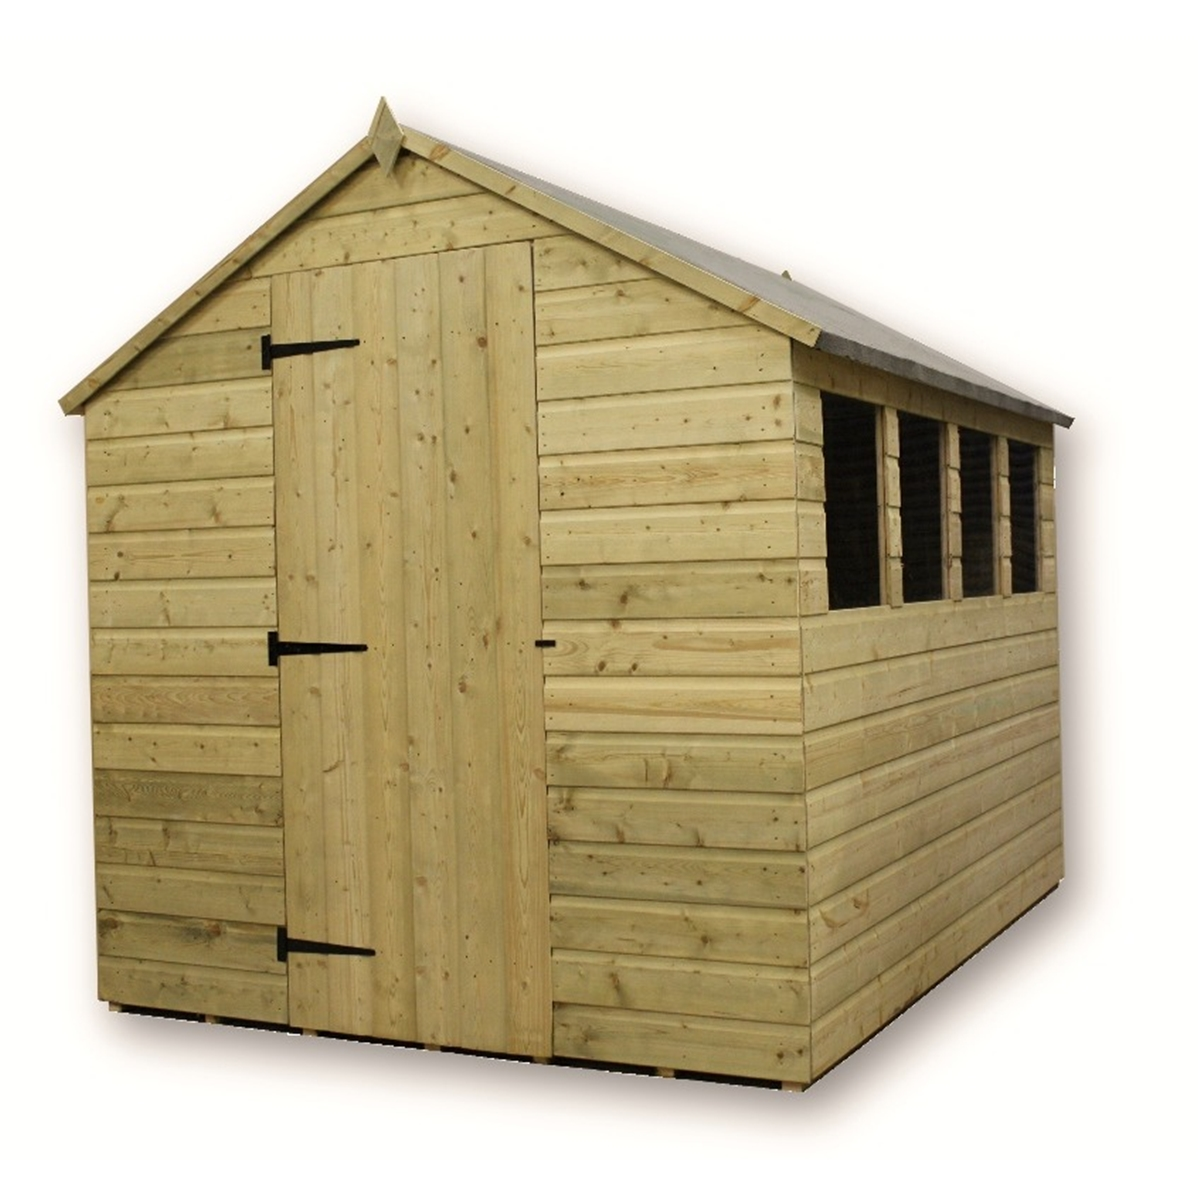 1200 #8A7741  Treated Tongue And Groove Apex Shed With 4 Windows And Single Door image Shed Doors And Windows 41331200